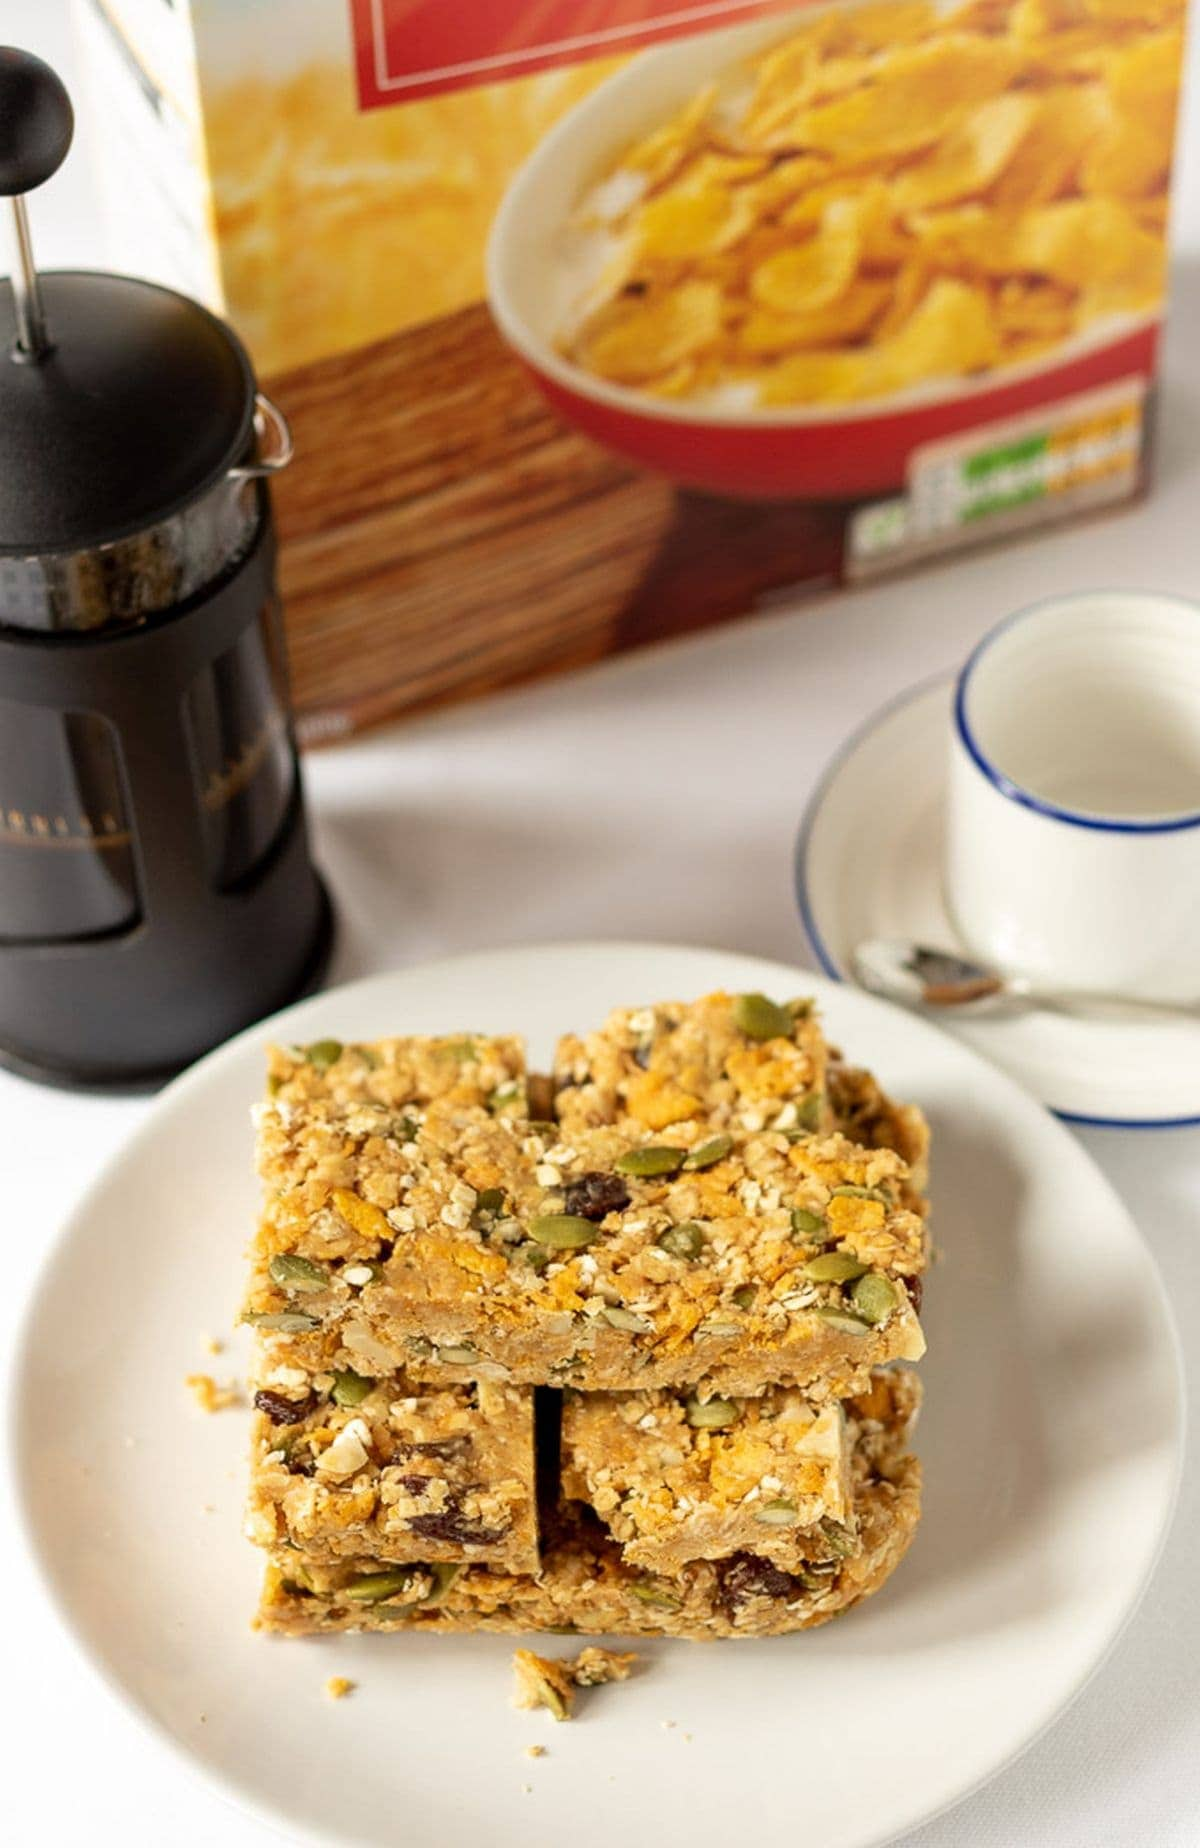 No-bake cereal breakfast bars stacked on a plate with a cafetiere, coffee cup and a box of cereal in the background.